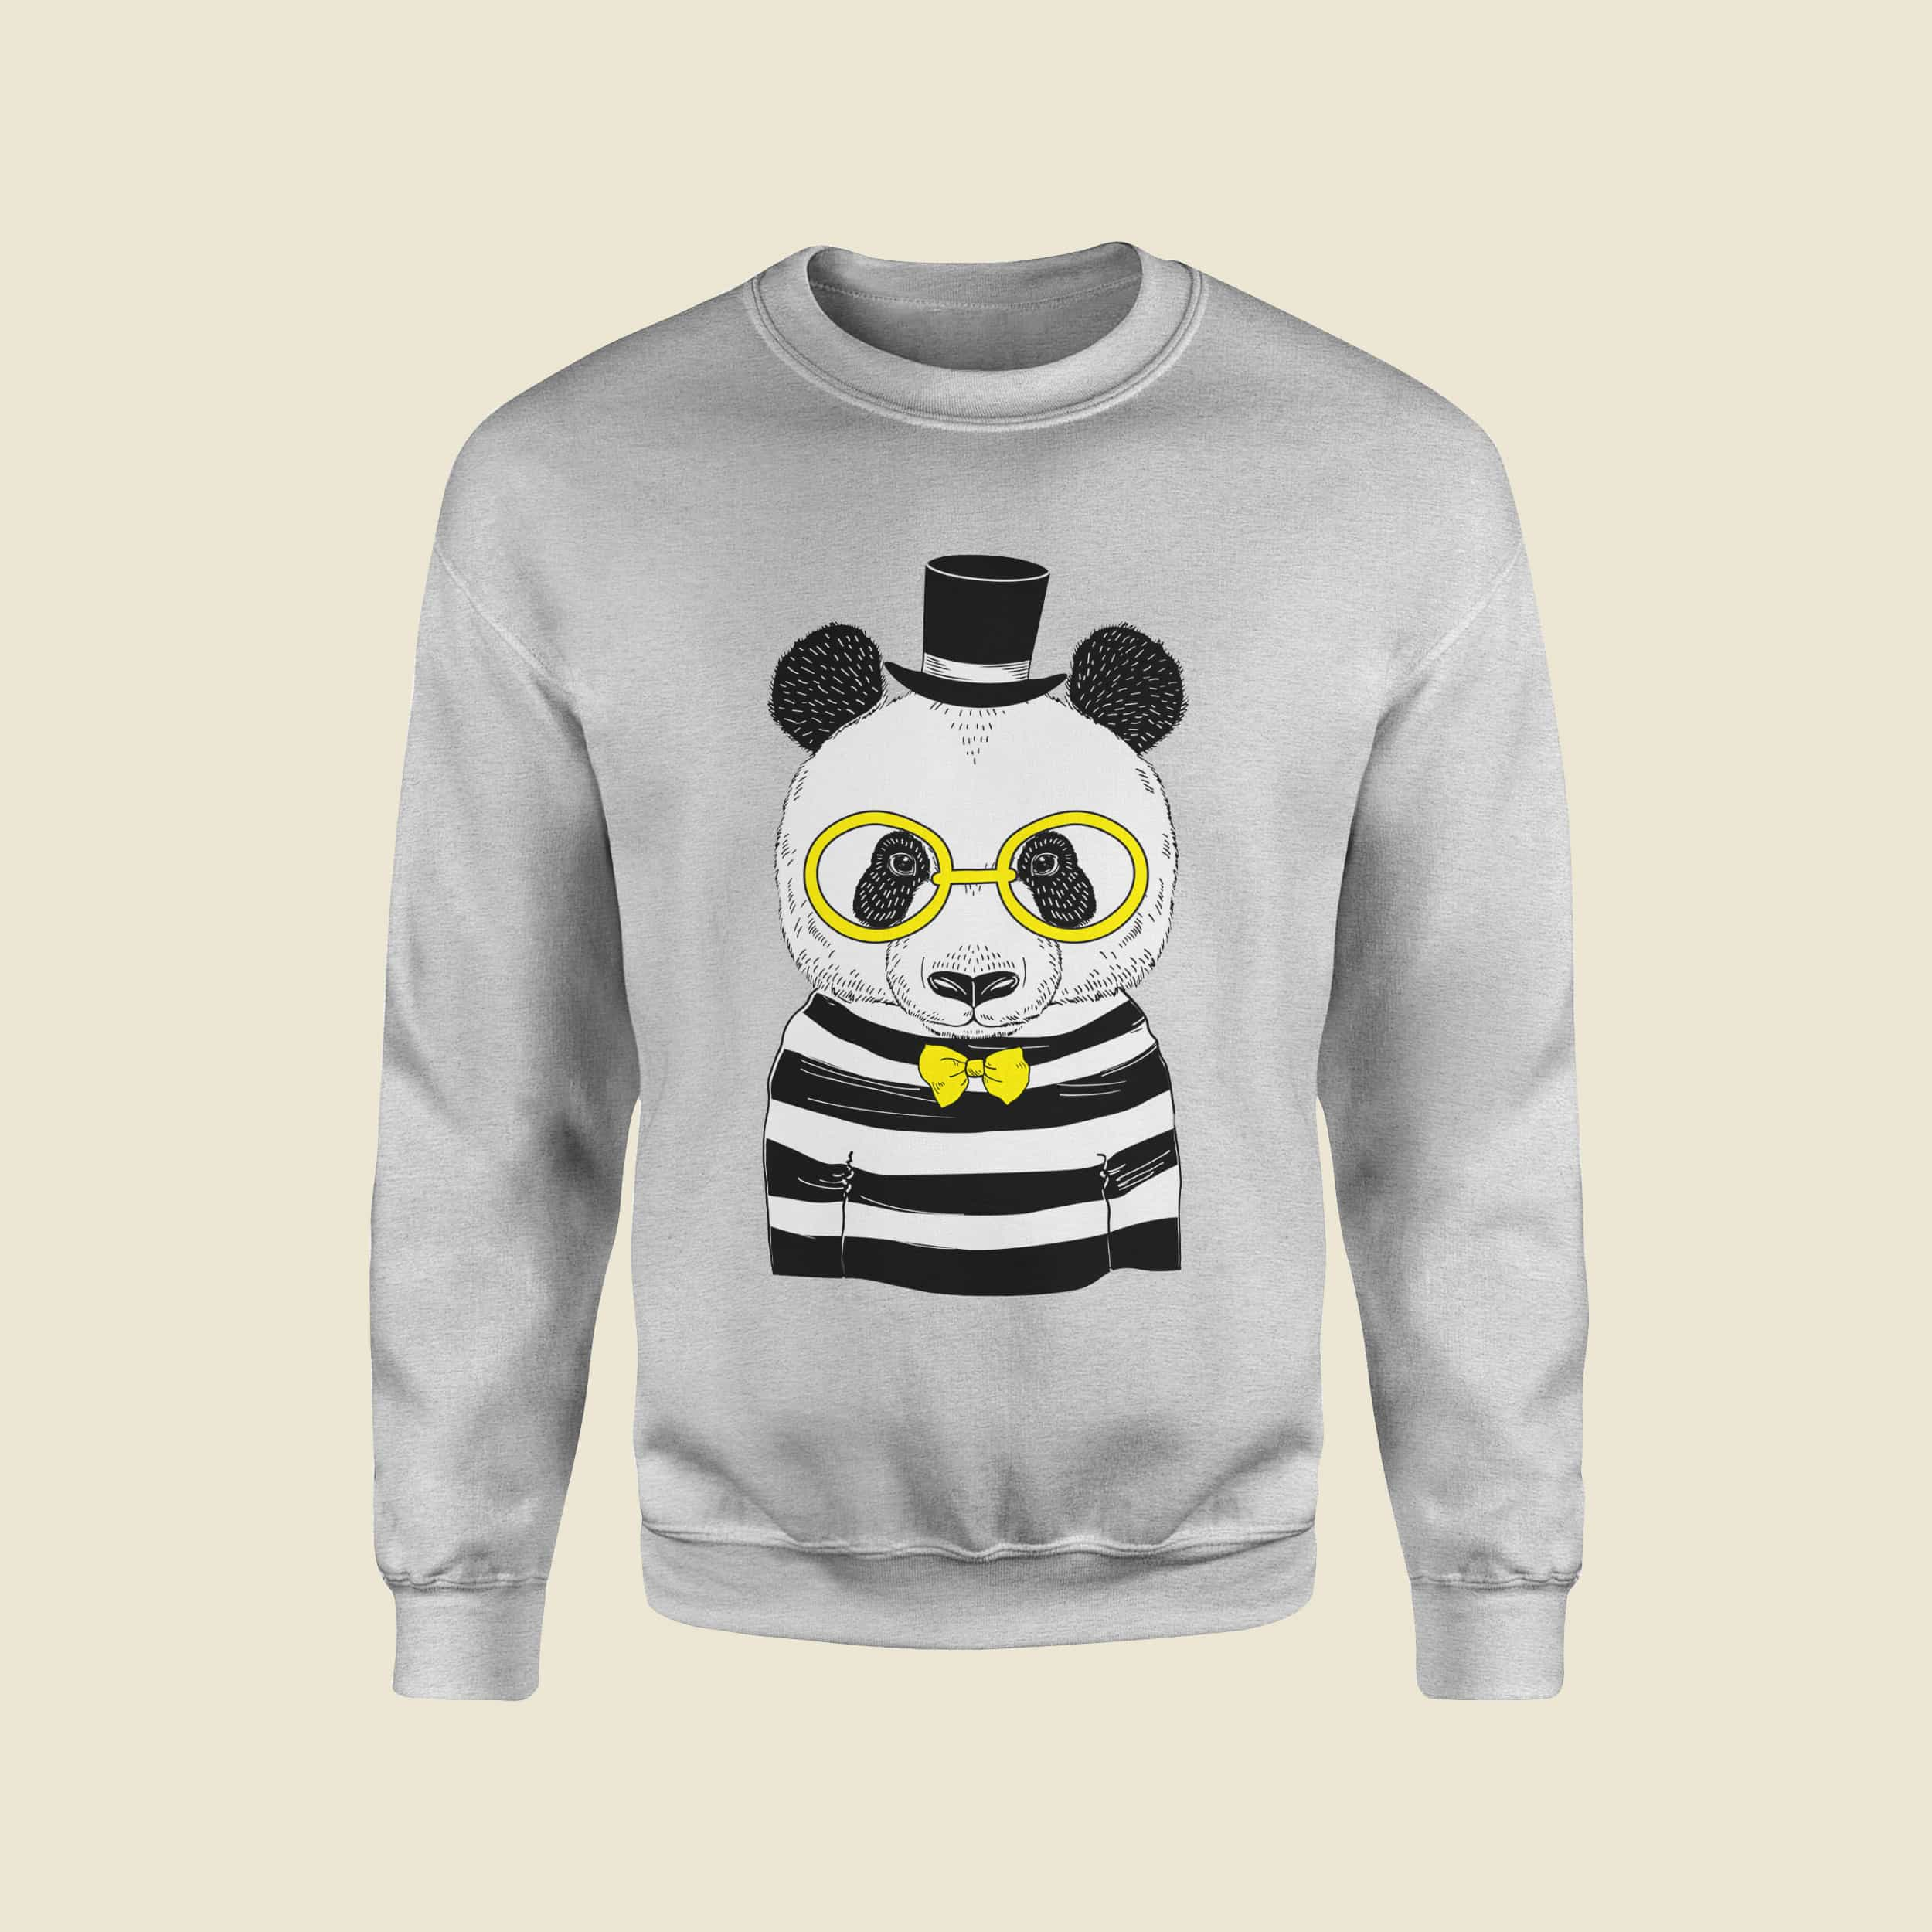 7d89708ef823 WOMEN PANDA DESIGN CREW NECK GREY SWEATSHIRT – Eagle   Rabbit